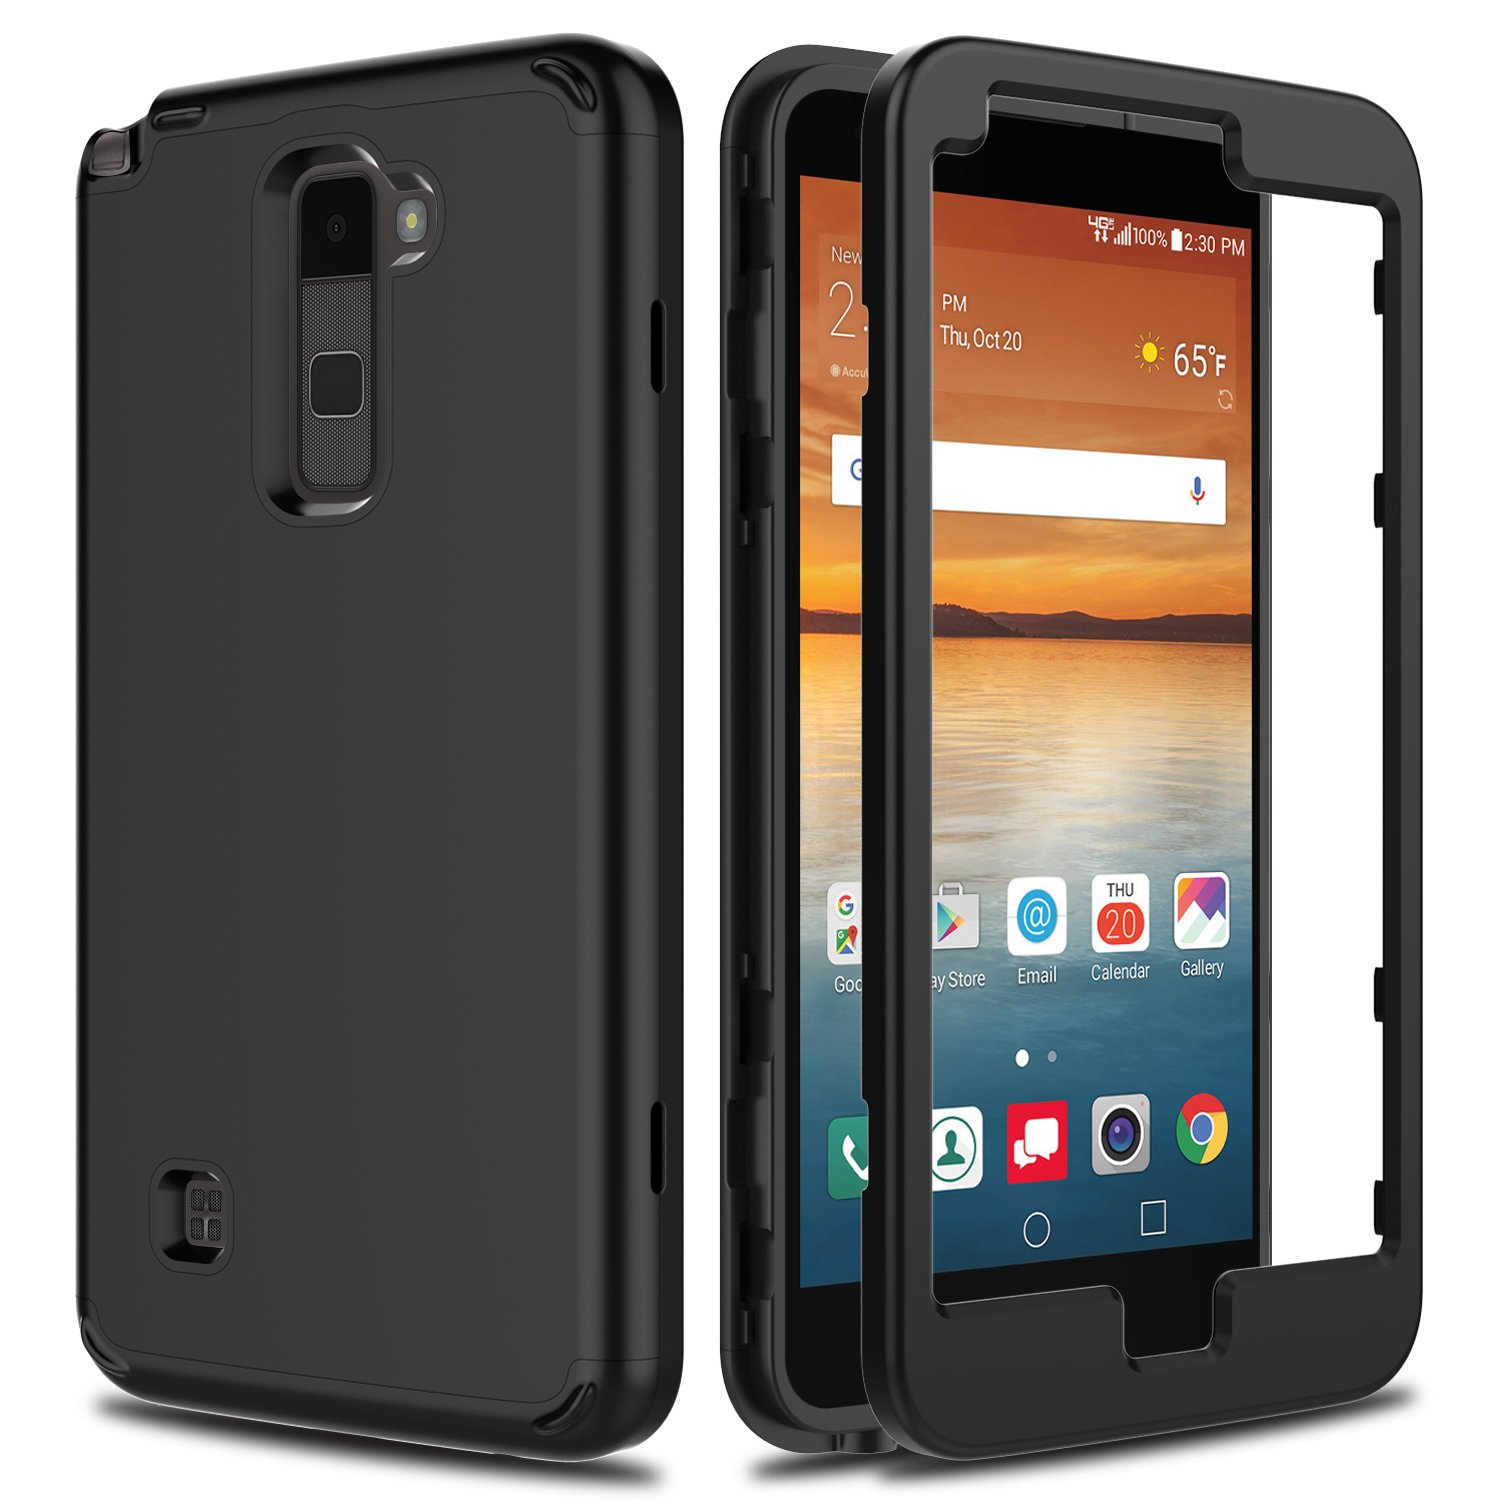 LG Stylo 2 Case, LG Stylo 2 V VS835 Case, AMENQ Slim 3 in 1 Heavy Duty Drop Absorbing Touch Rubber Protection Cover [Black] for LG Stylo 2 LS775-Matte